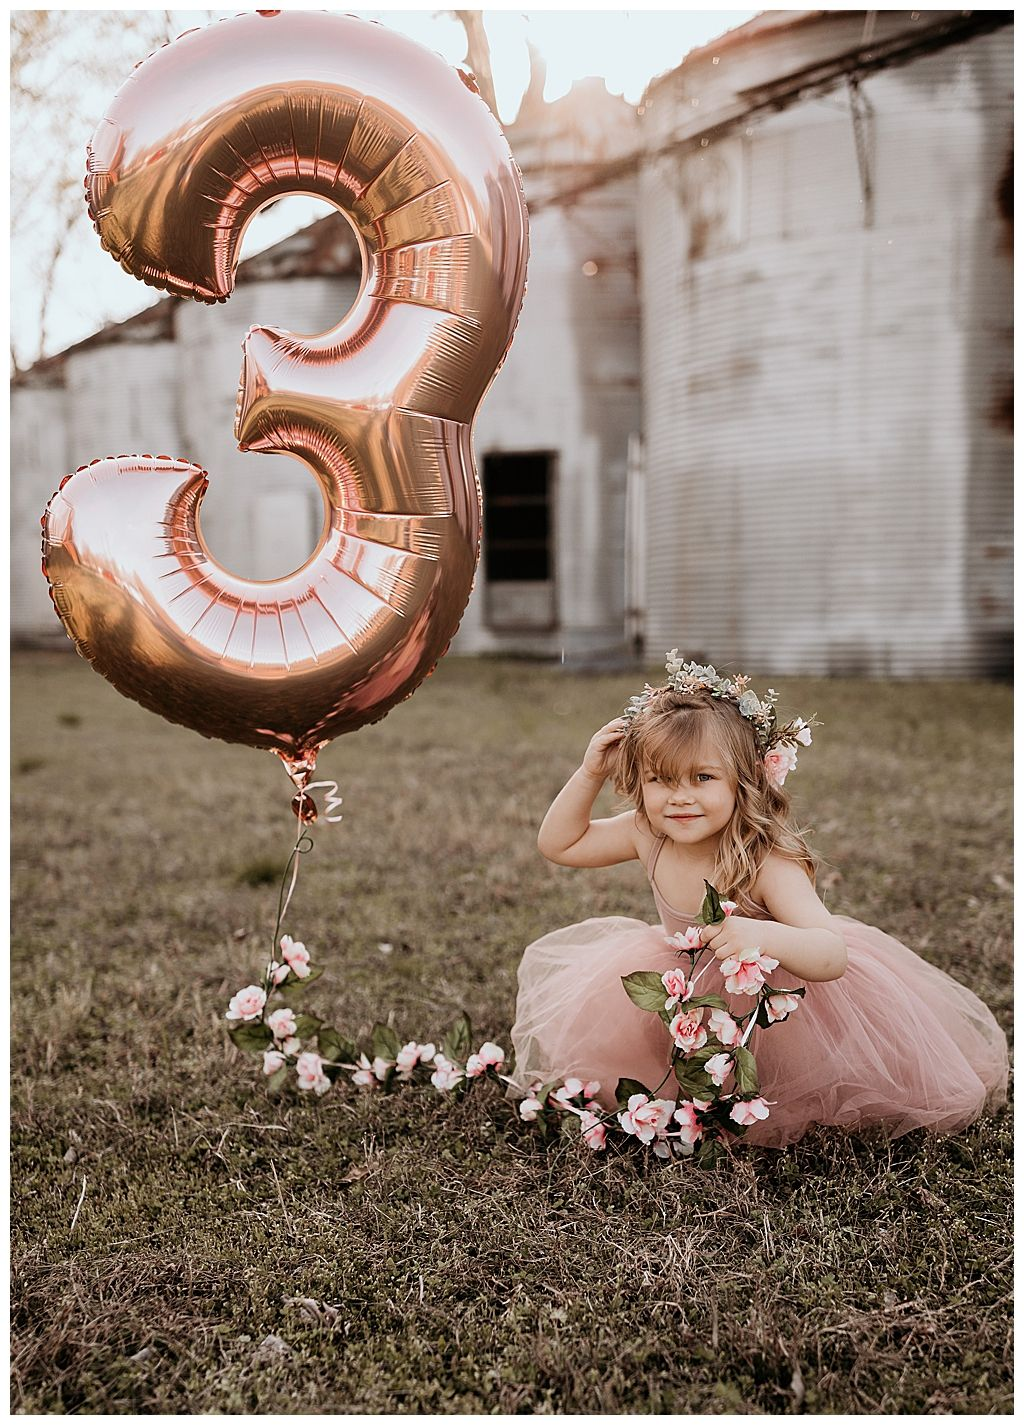 An Adorable Birthday Photoshoot with Mylar Balloons, Flower Crowns and Bubbles – Love Inc. Mag – Bebekler